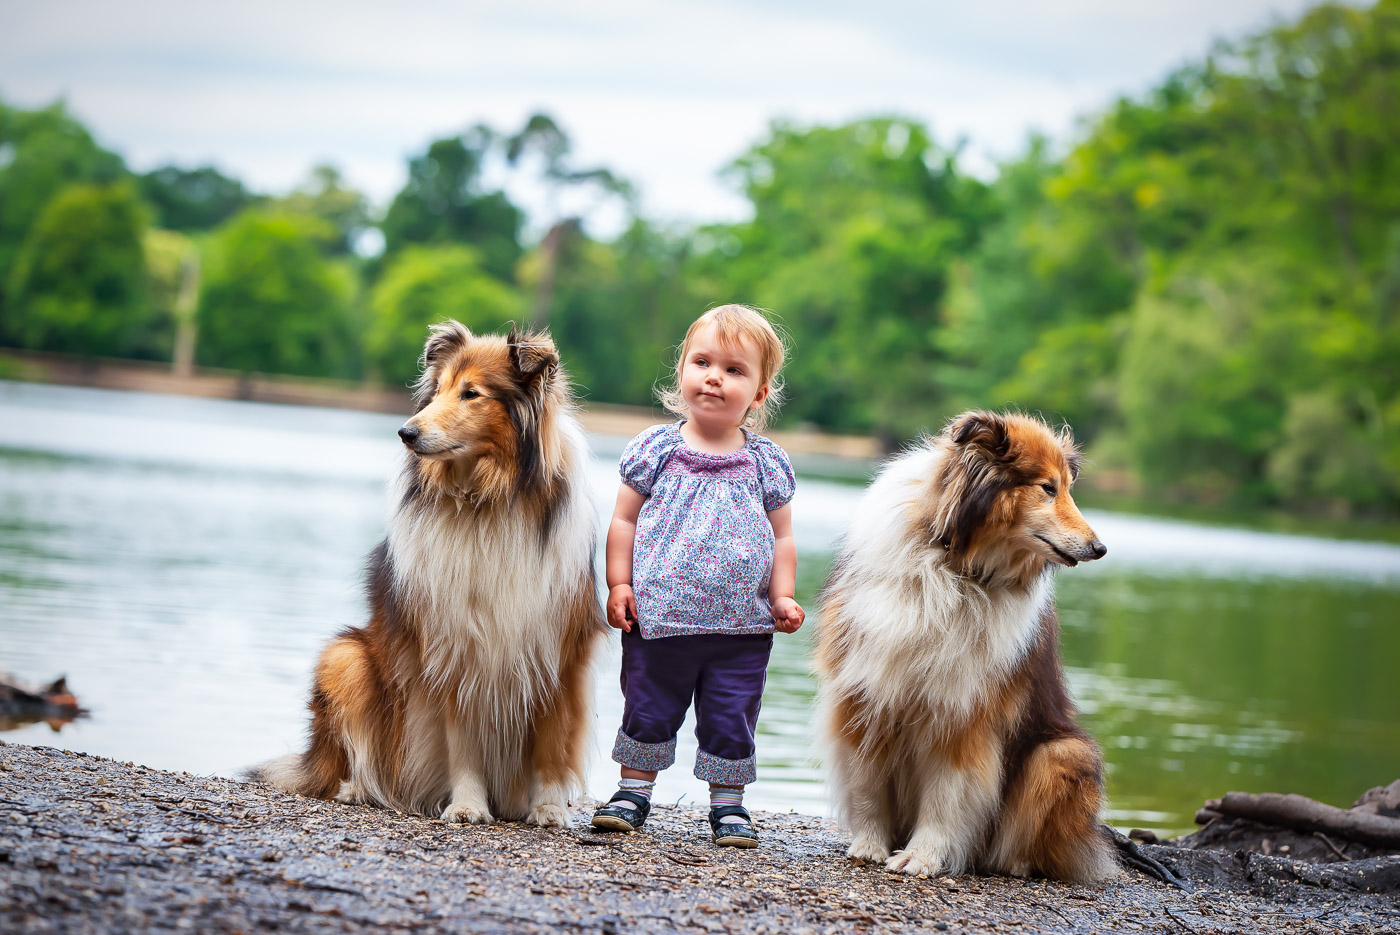 Lovely girl with two dog guardians at the lake on an outdoor family photoshoot